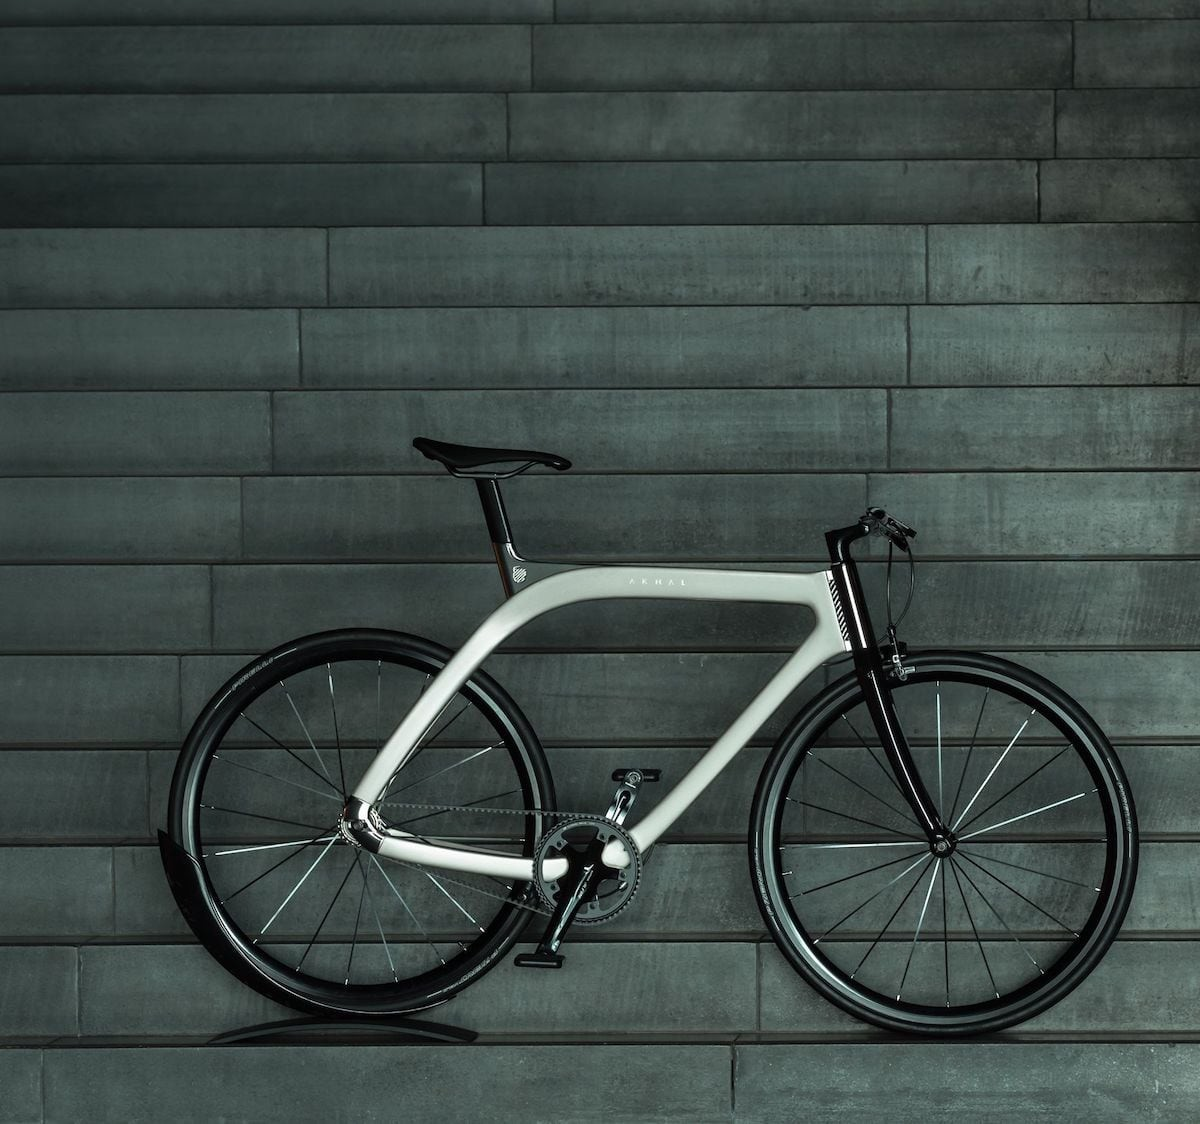 EXTANS Akhal Shadow and Shine Exclusive Bicycles have truly elegant design